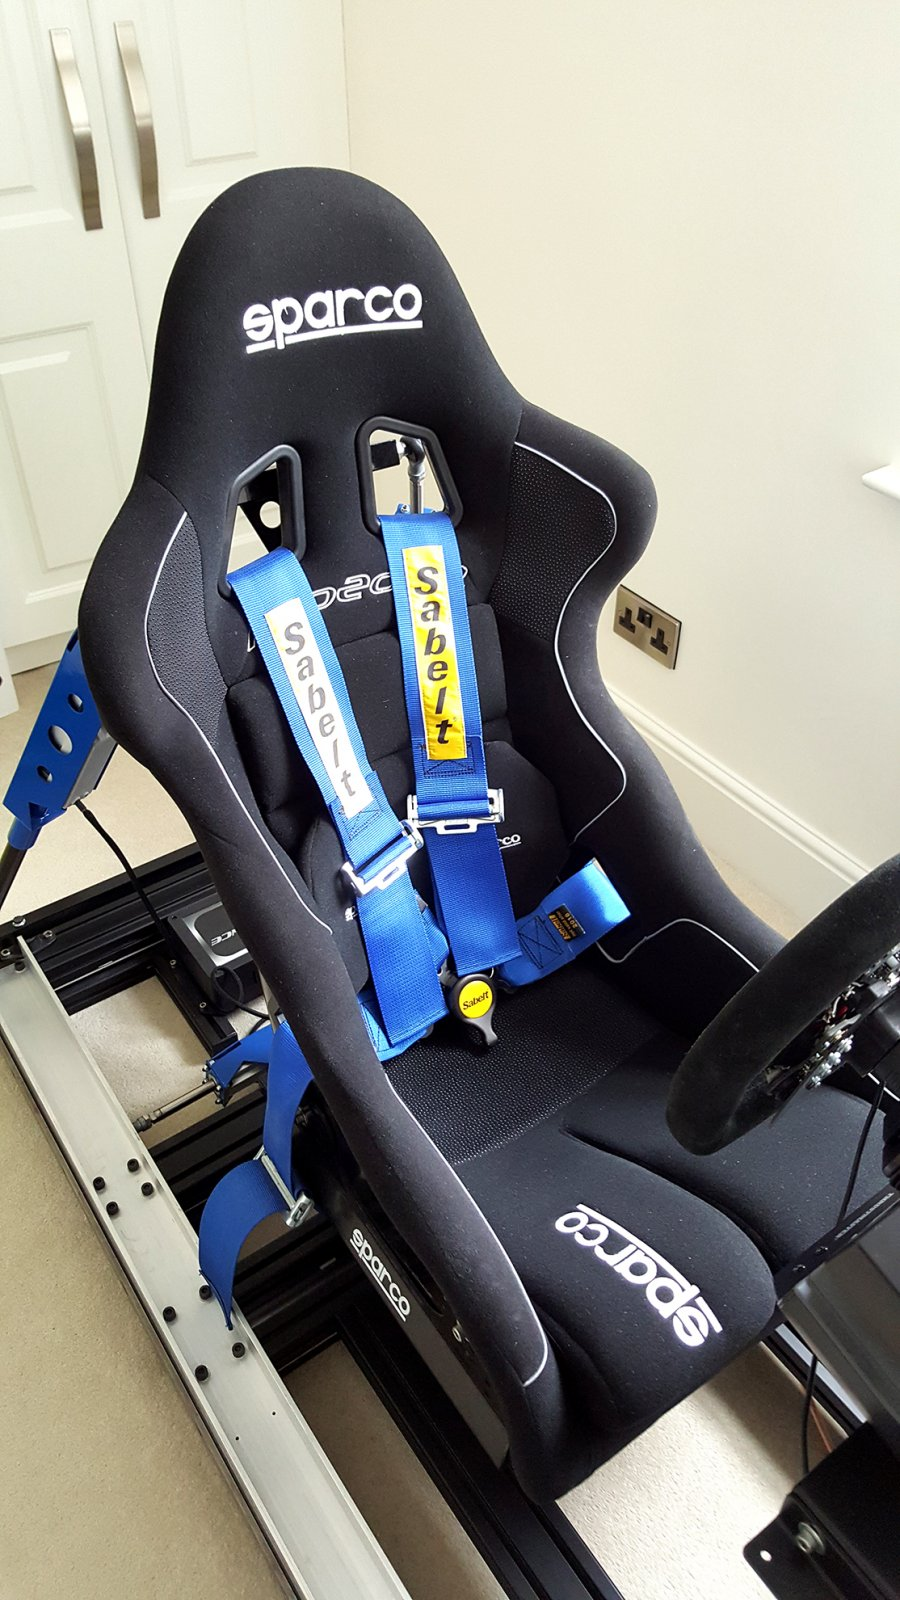 3DOF SimXperience SX3000 Motion Racing Simulator Kit - UK